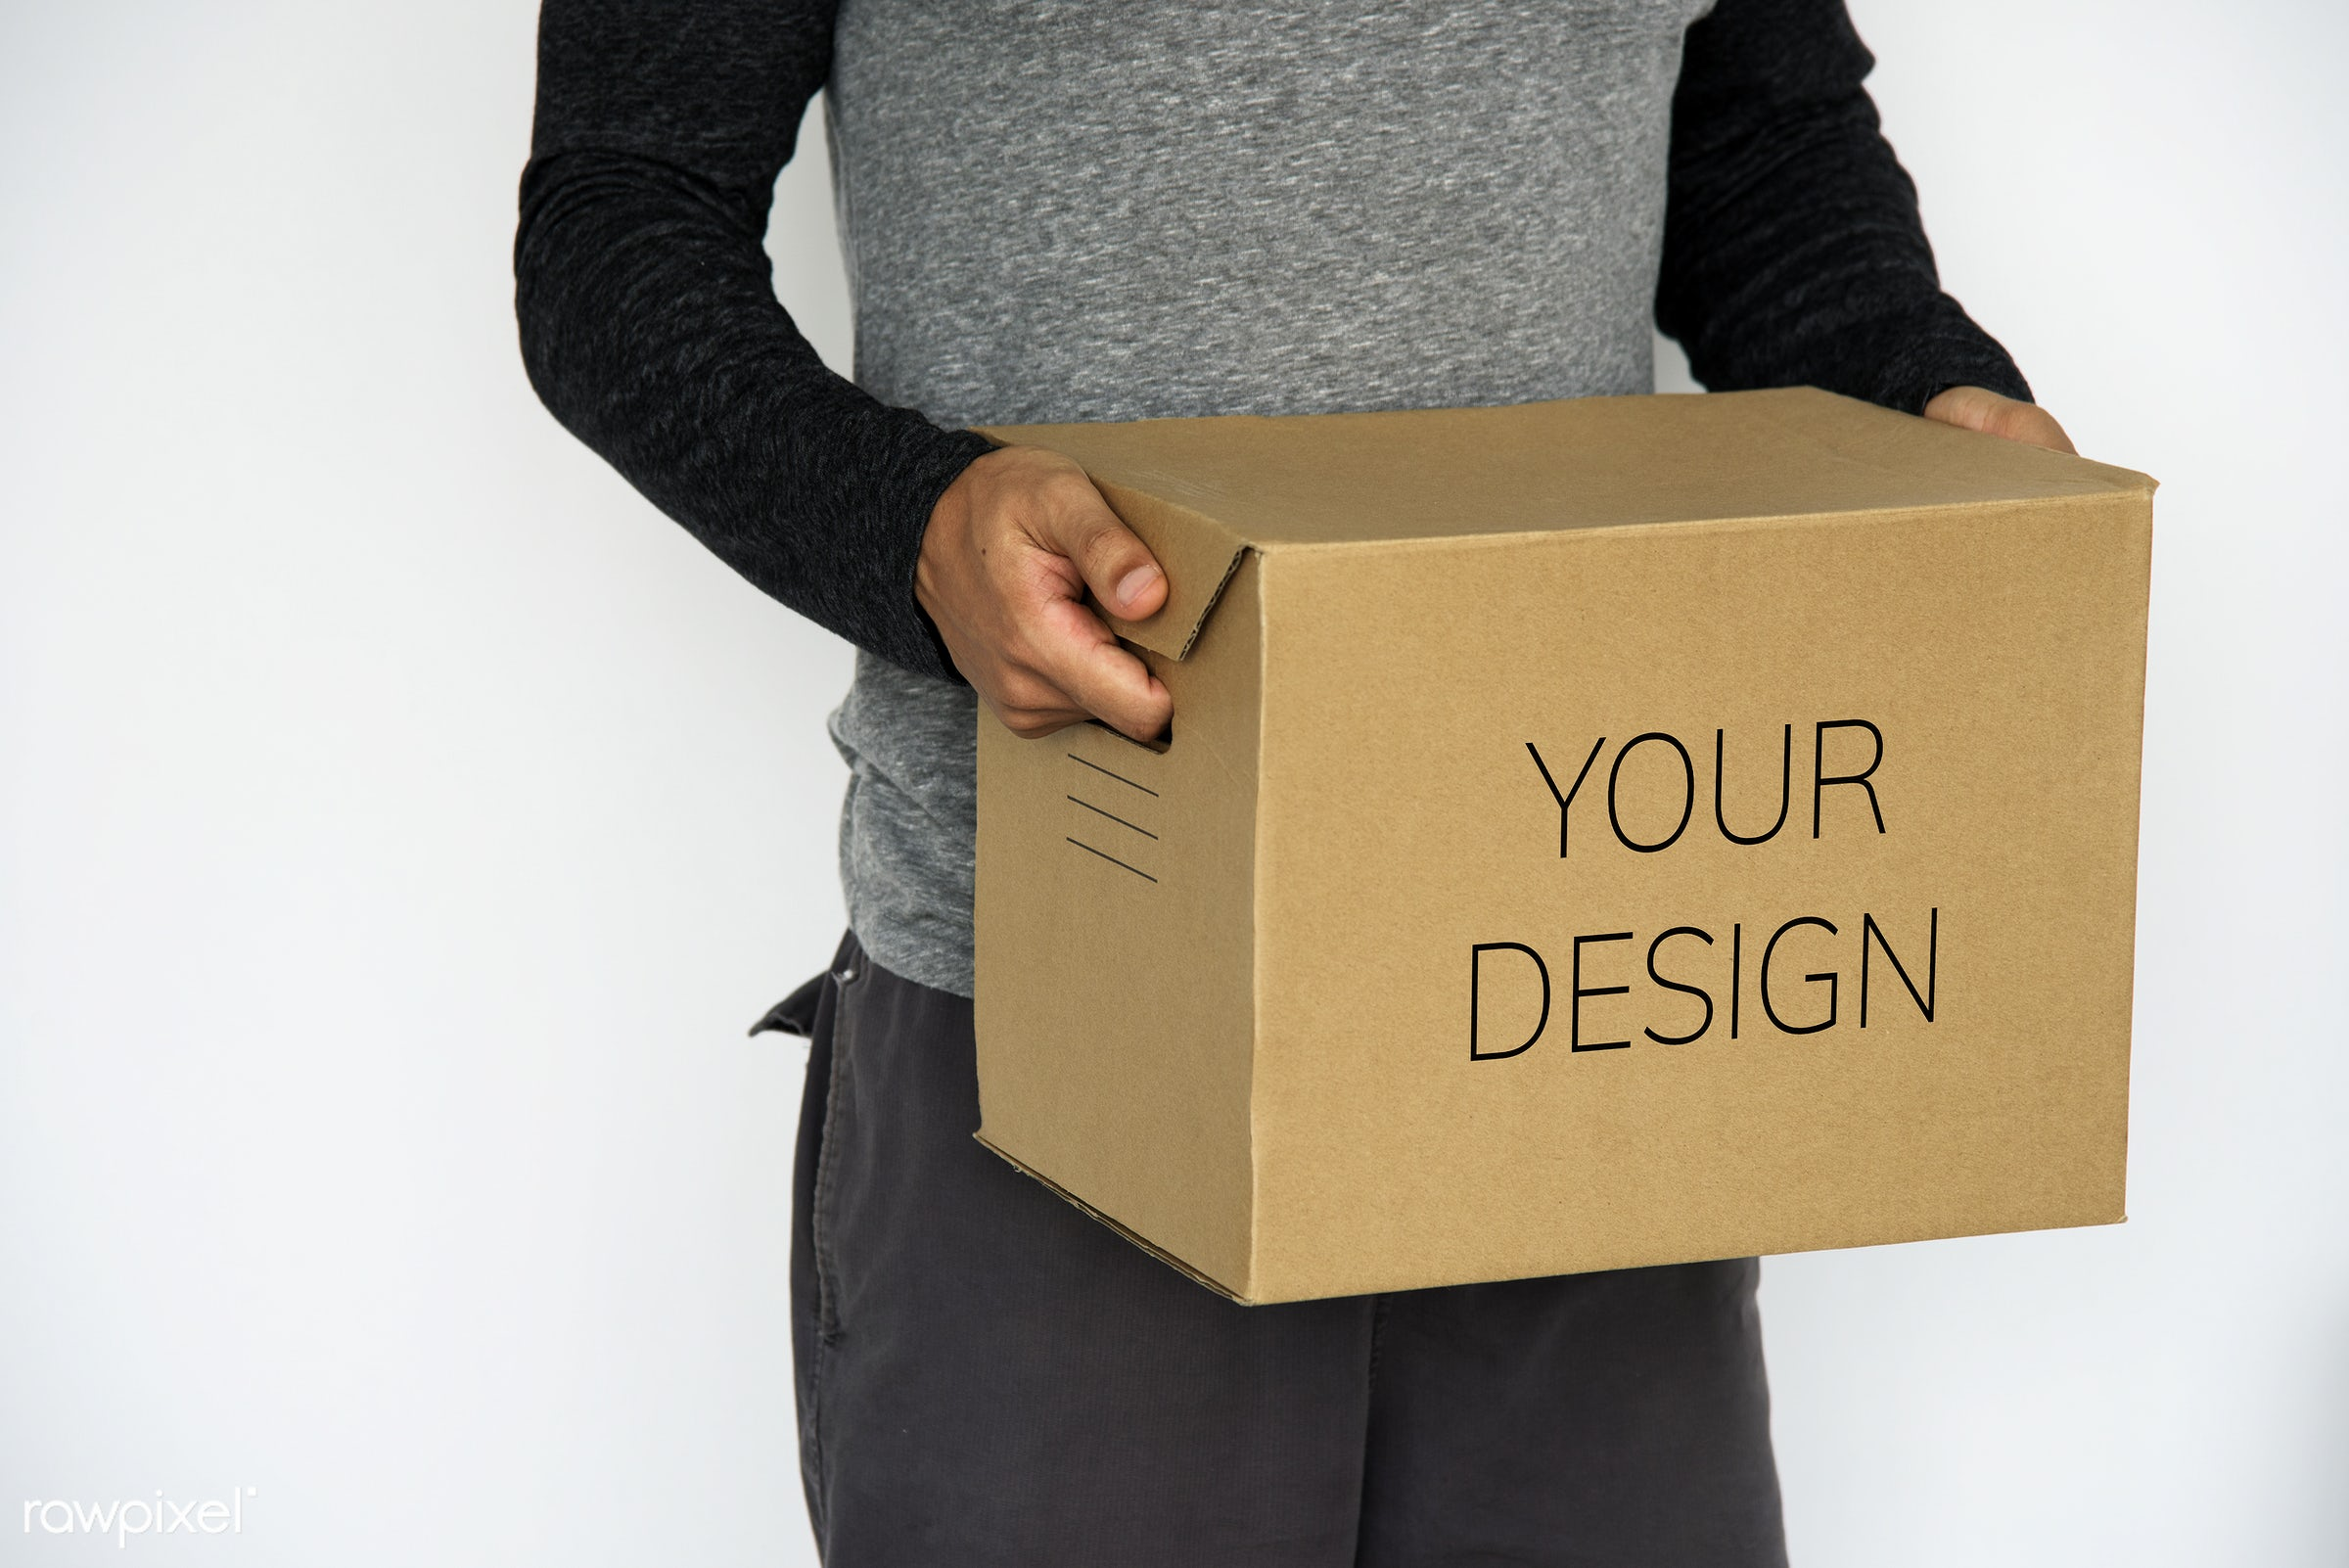 box, package, delivery, mock up, moving, container, pack, shirt, bear, behavior, boy, bring, brown, cardboard, carry, copy...